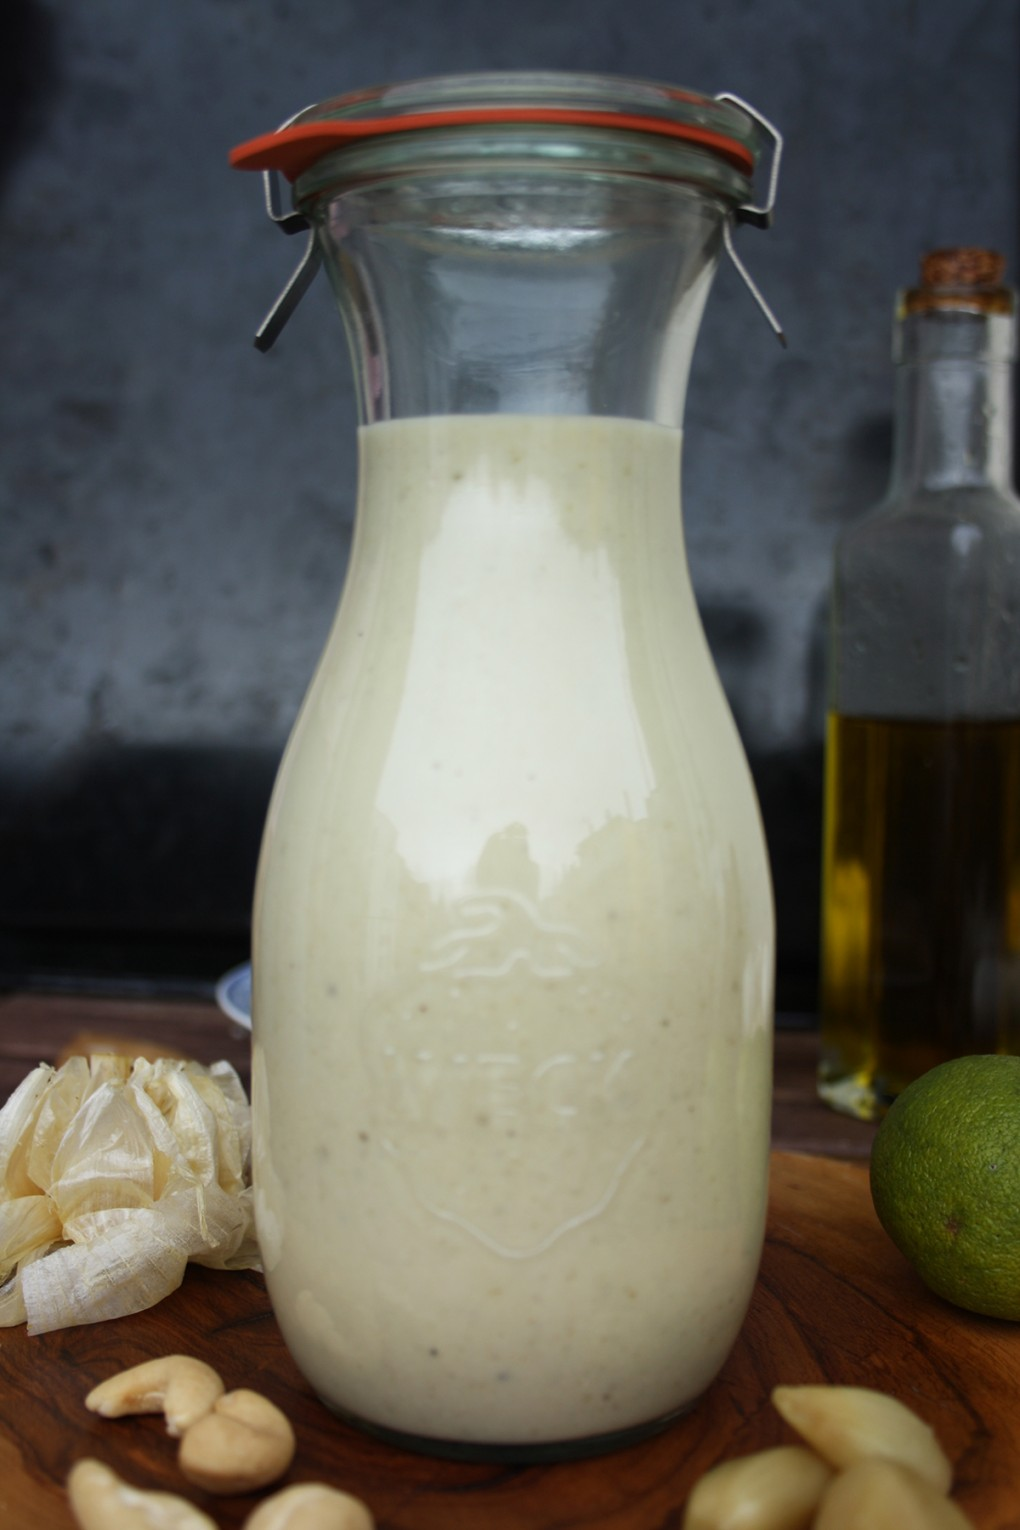 Roasted Garlic Dressing in a Bottle Ready for Serving with Garlic Cloves on the Table